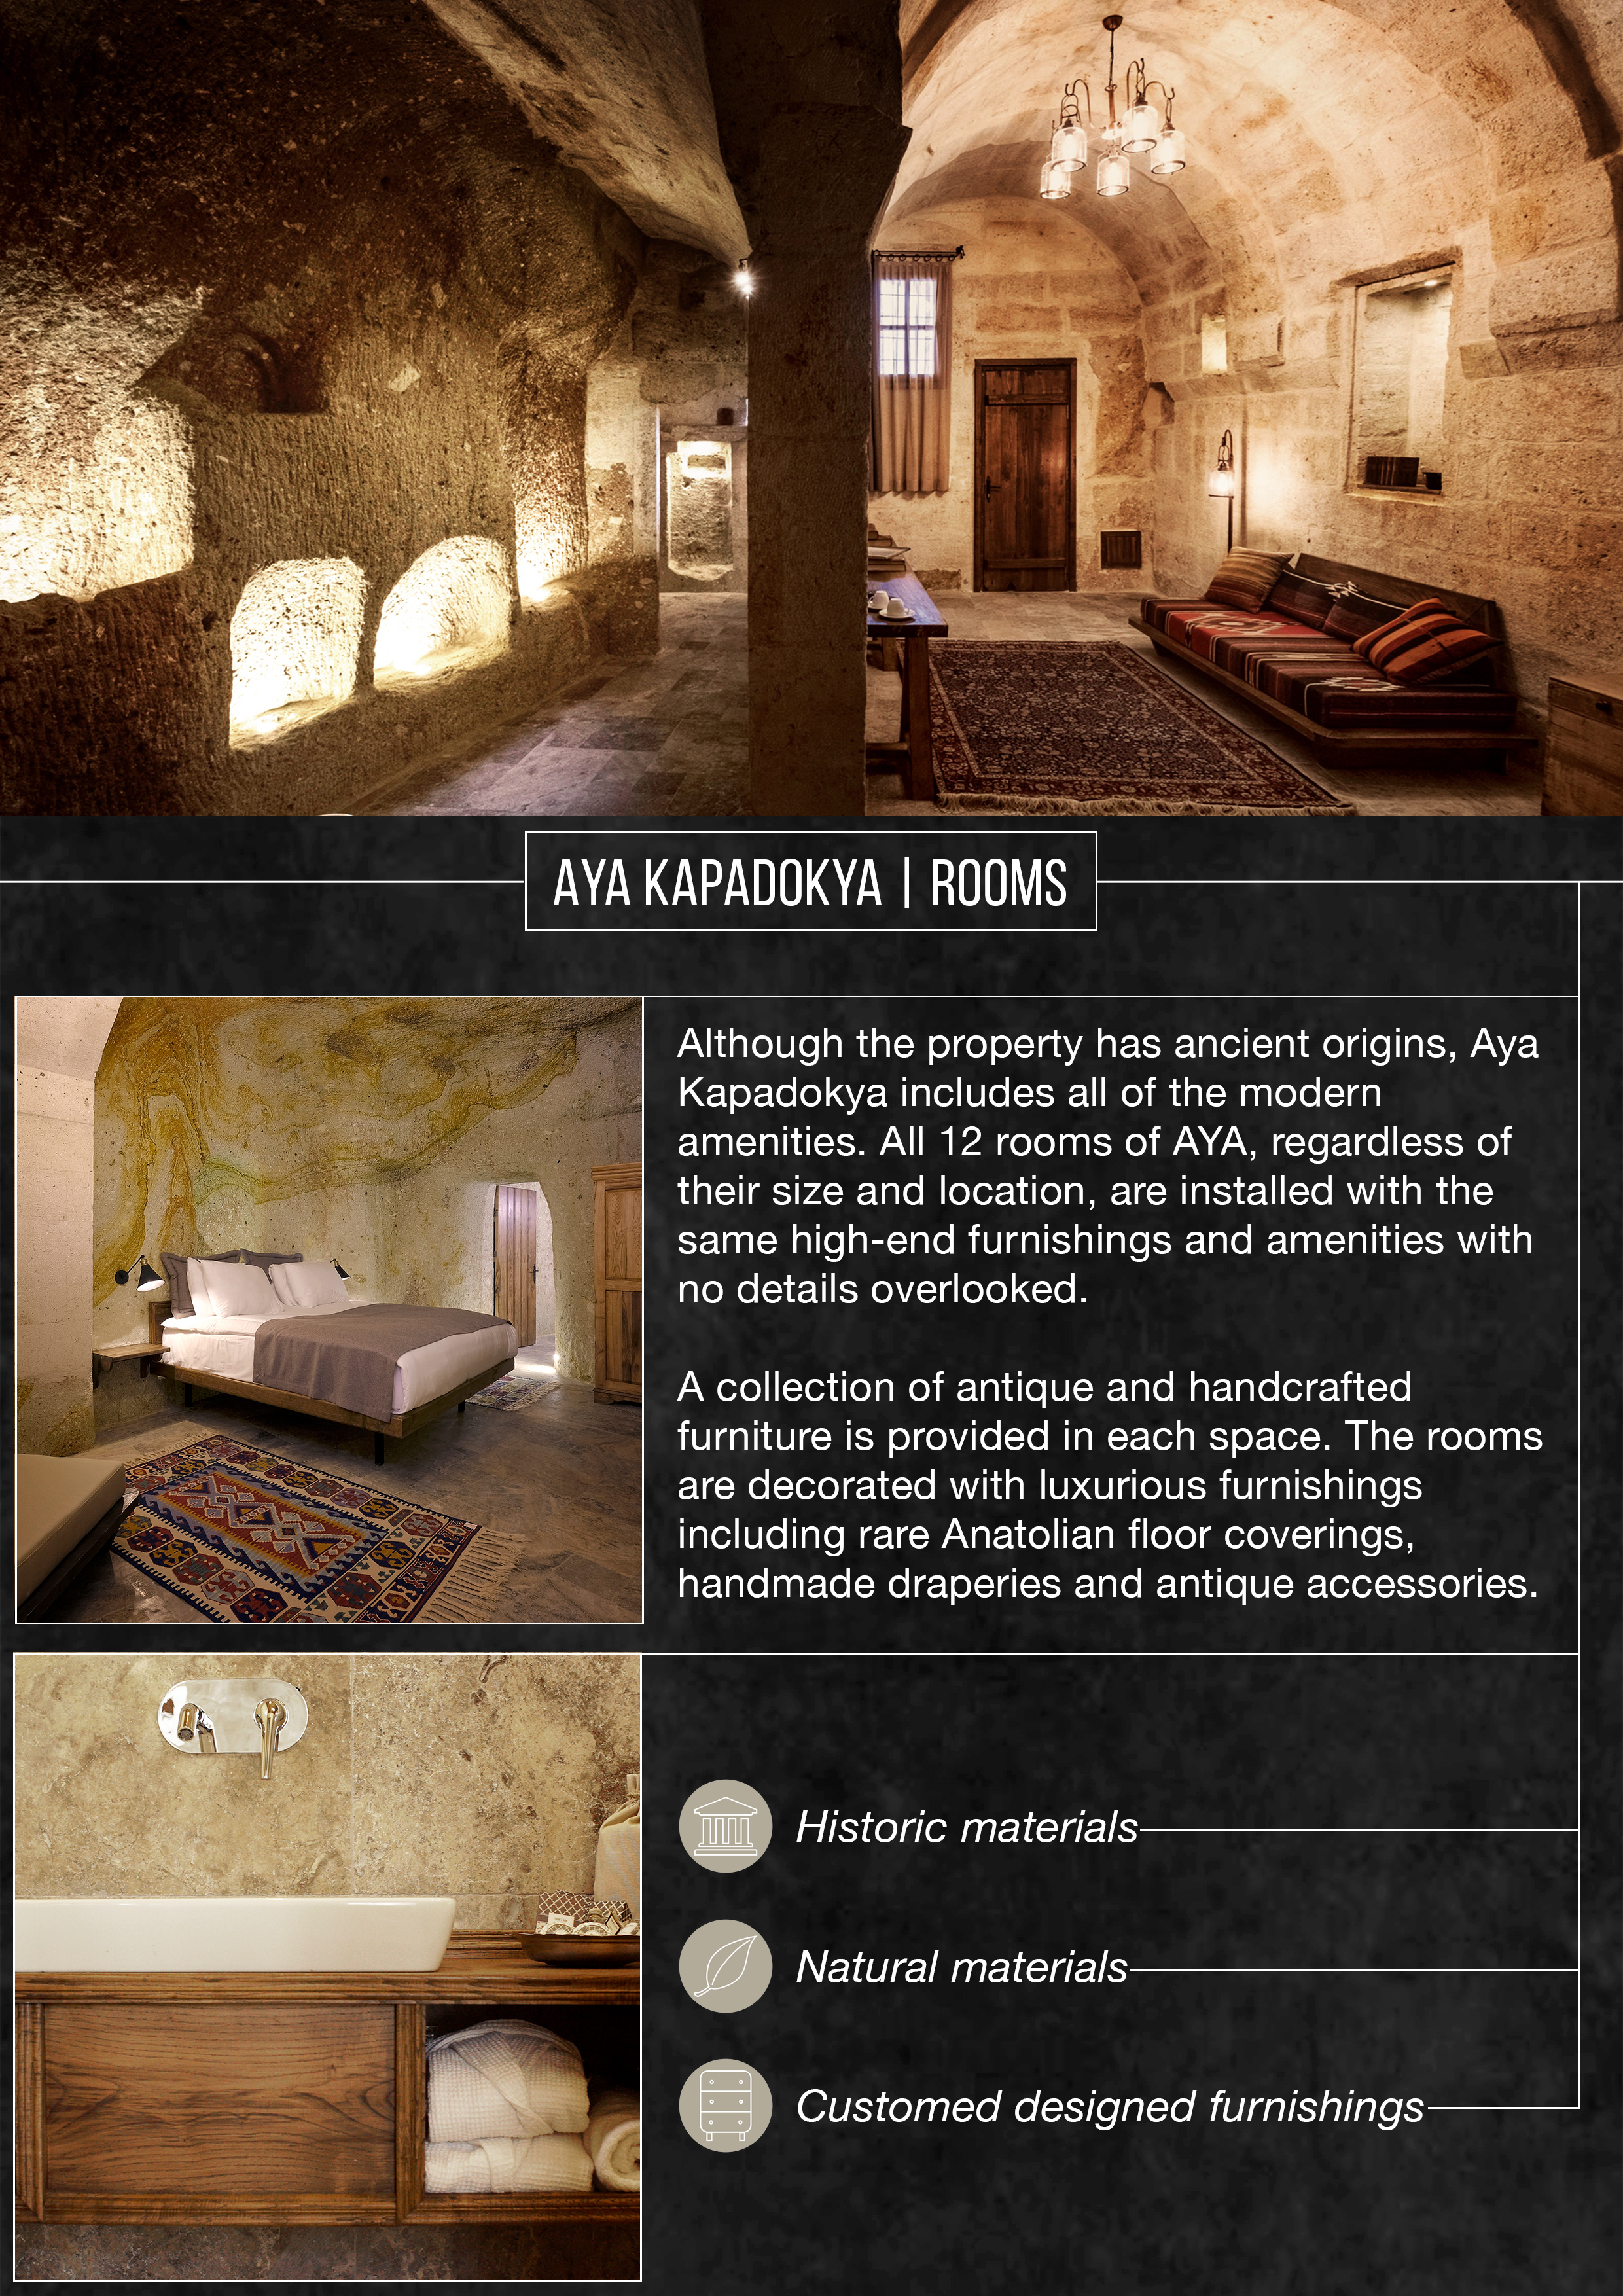 aya-kapadokya-infographic-fact-sheet-0002